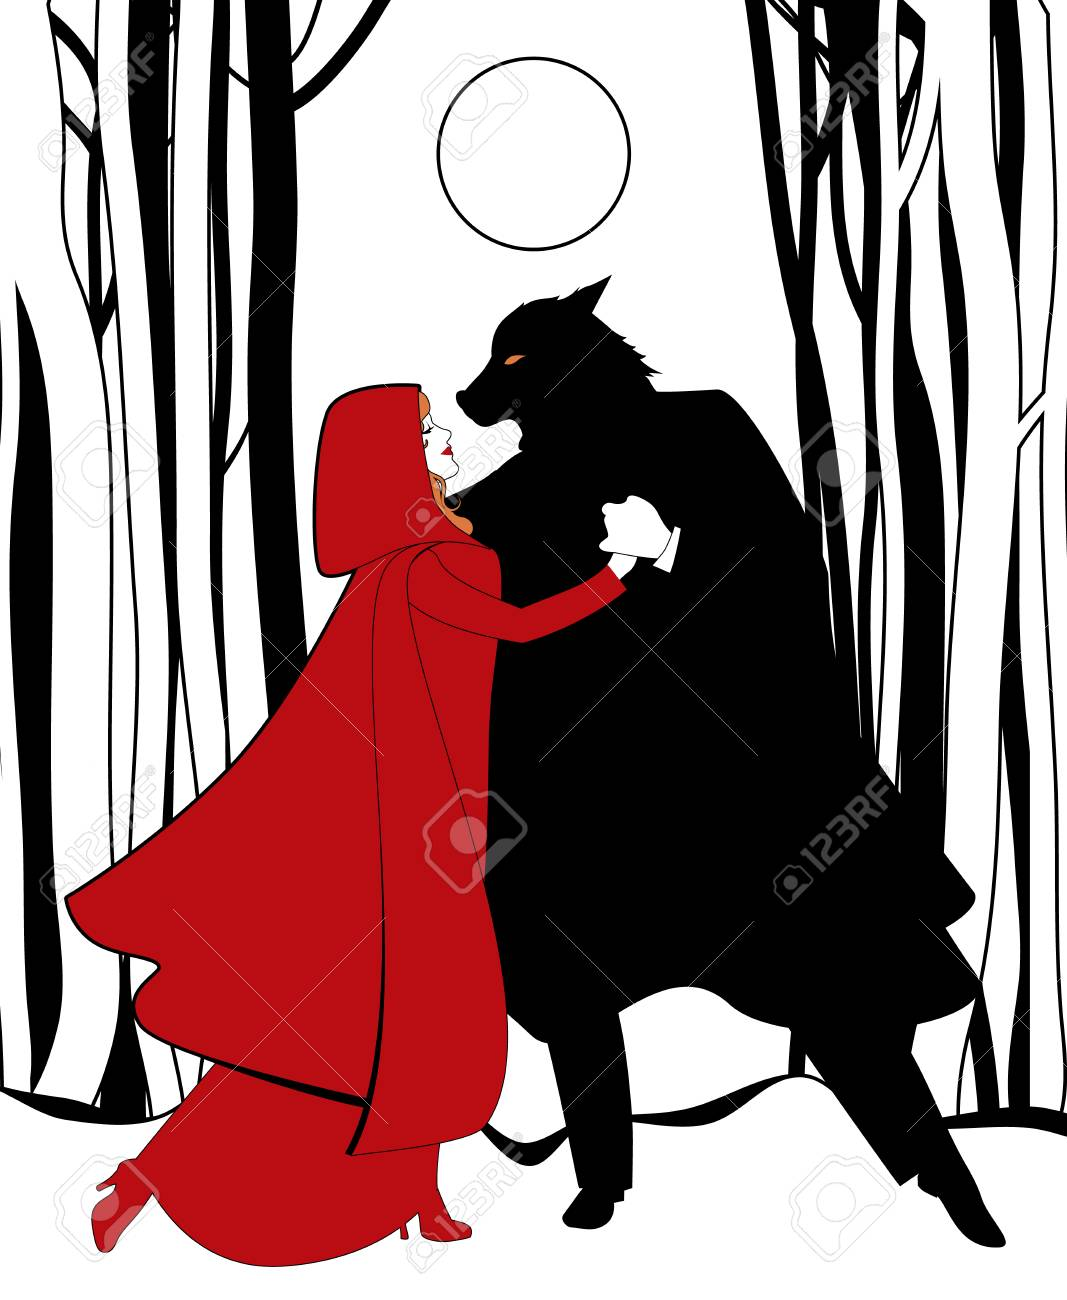 Little Red Riding Hood And The Wolf Dancing In The Forest In